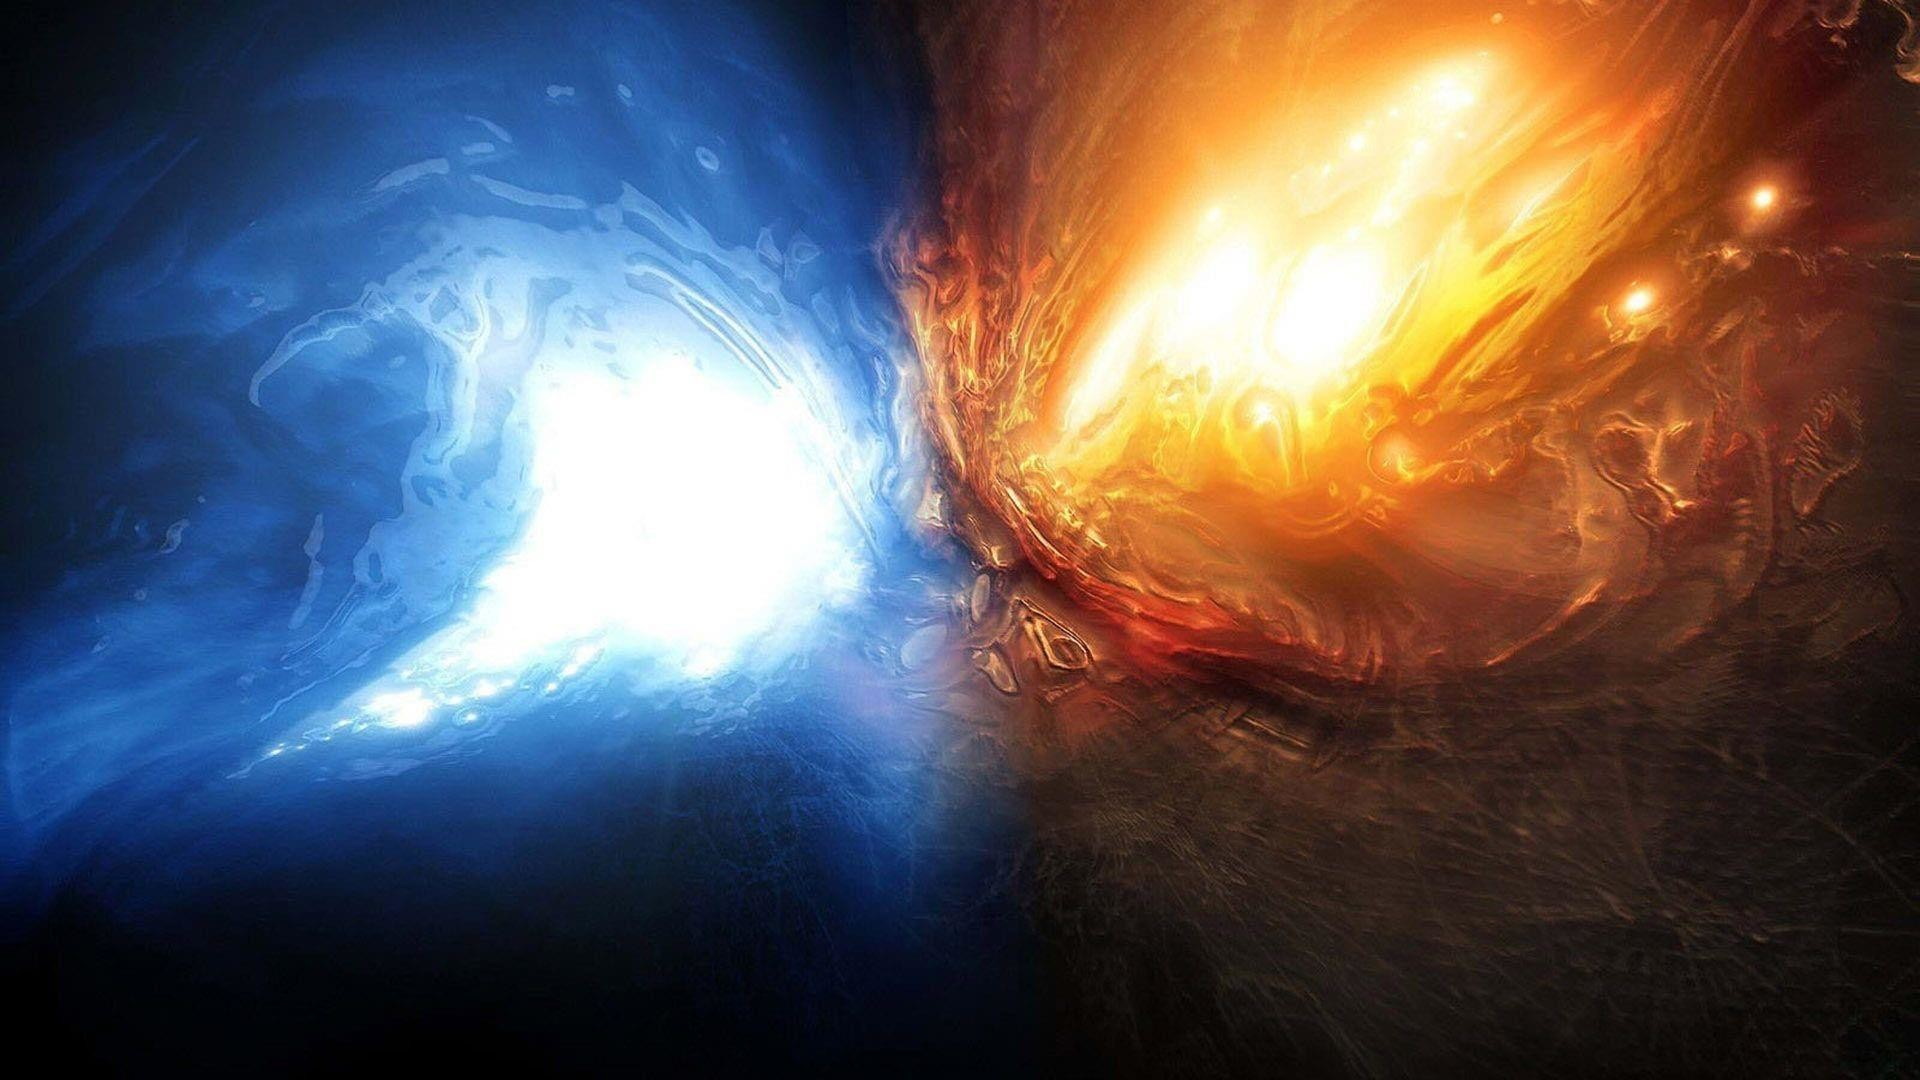 Cool abstract space art wallpaper